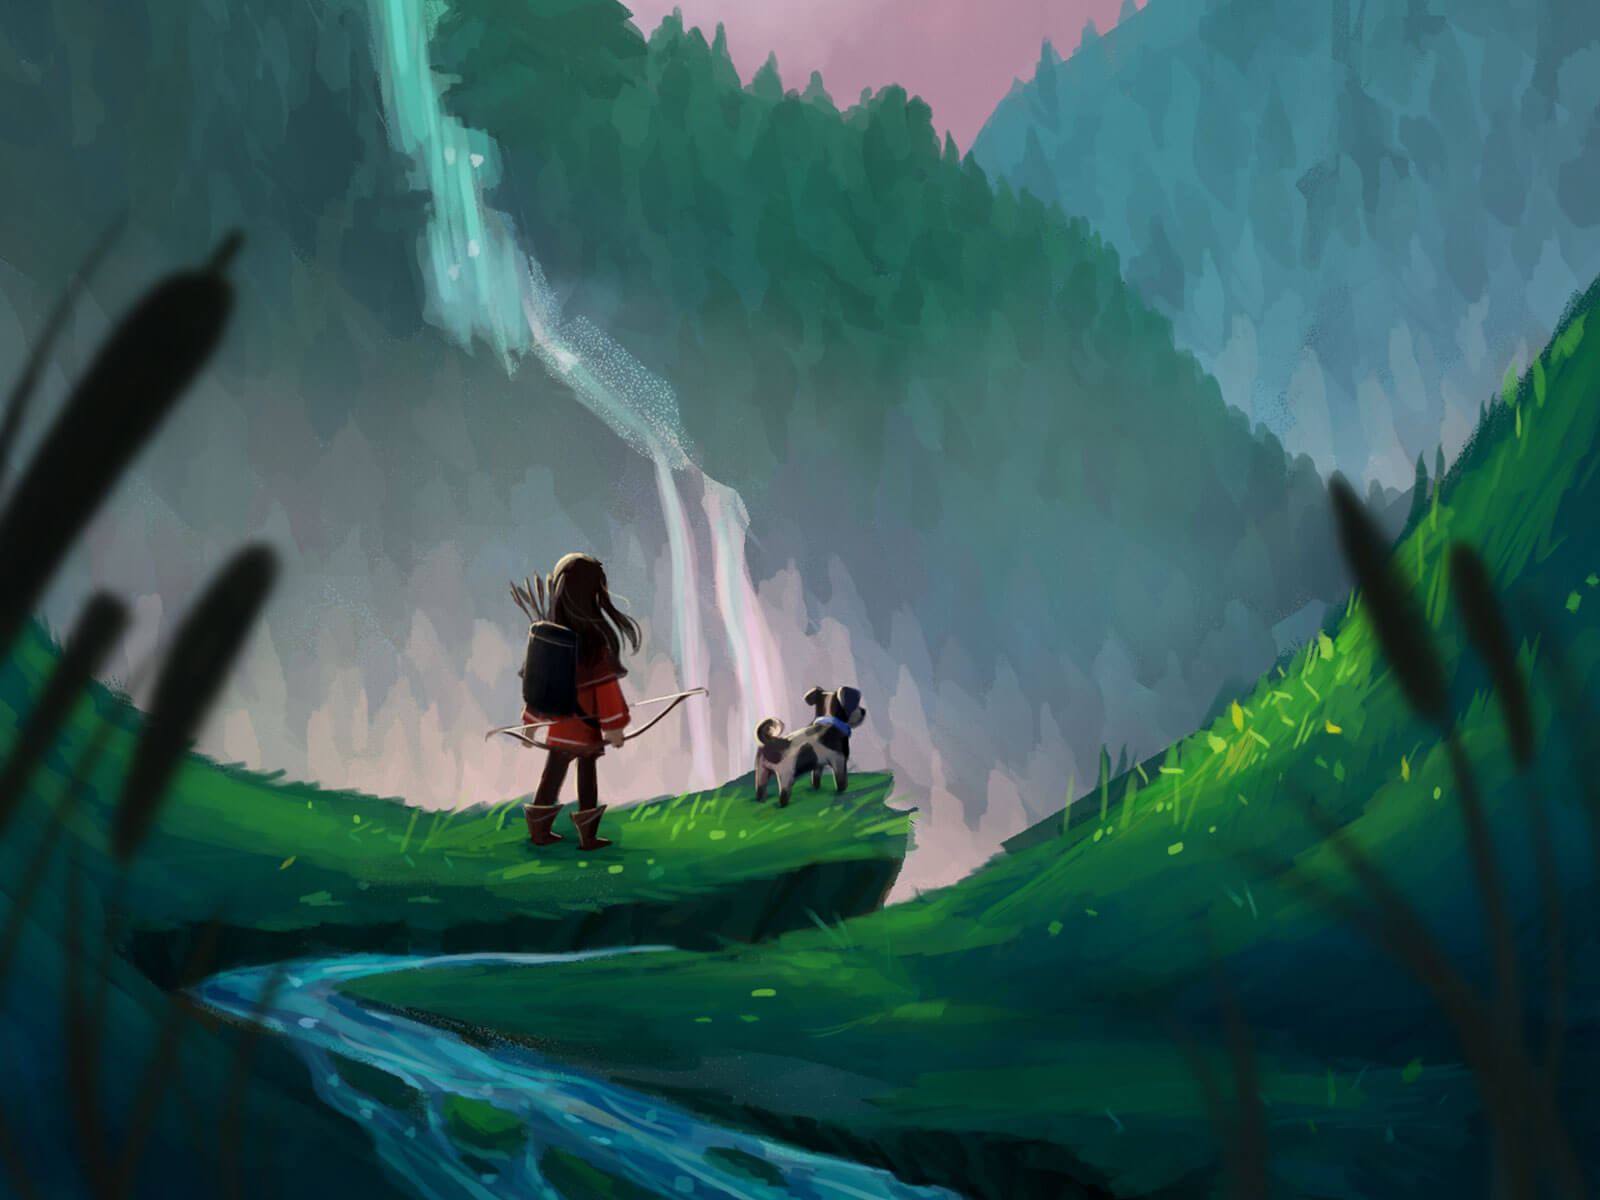 A child carrying a bow gazes at mountains with her dog